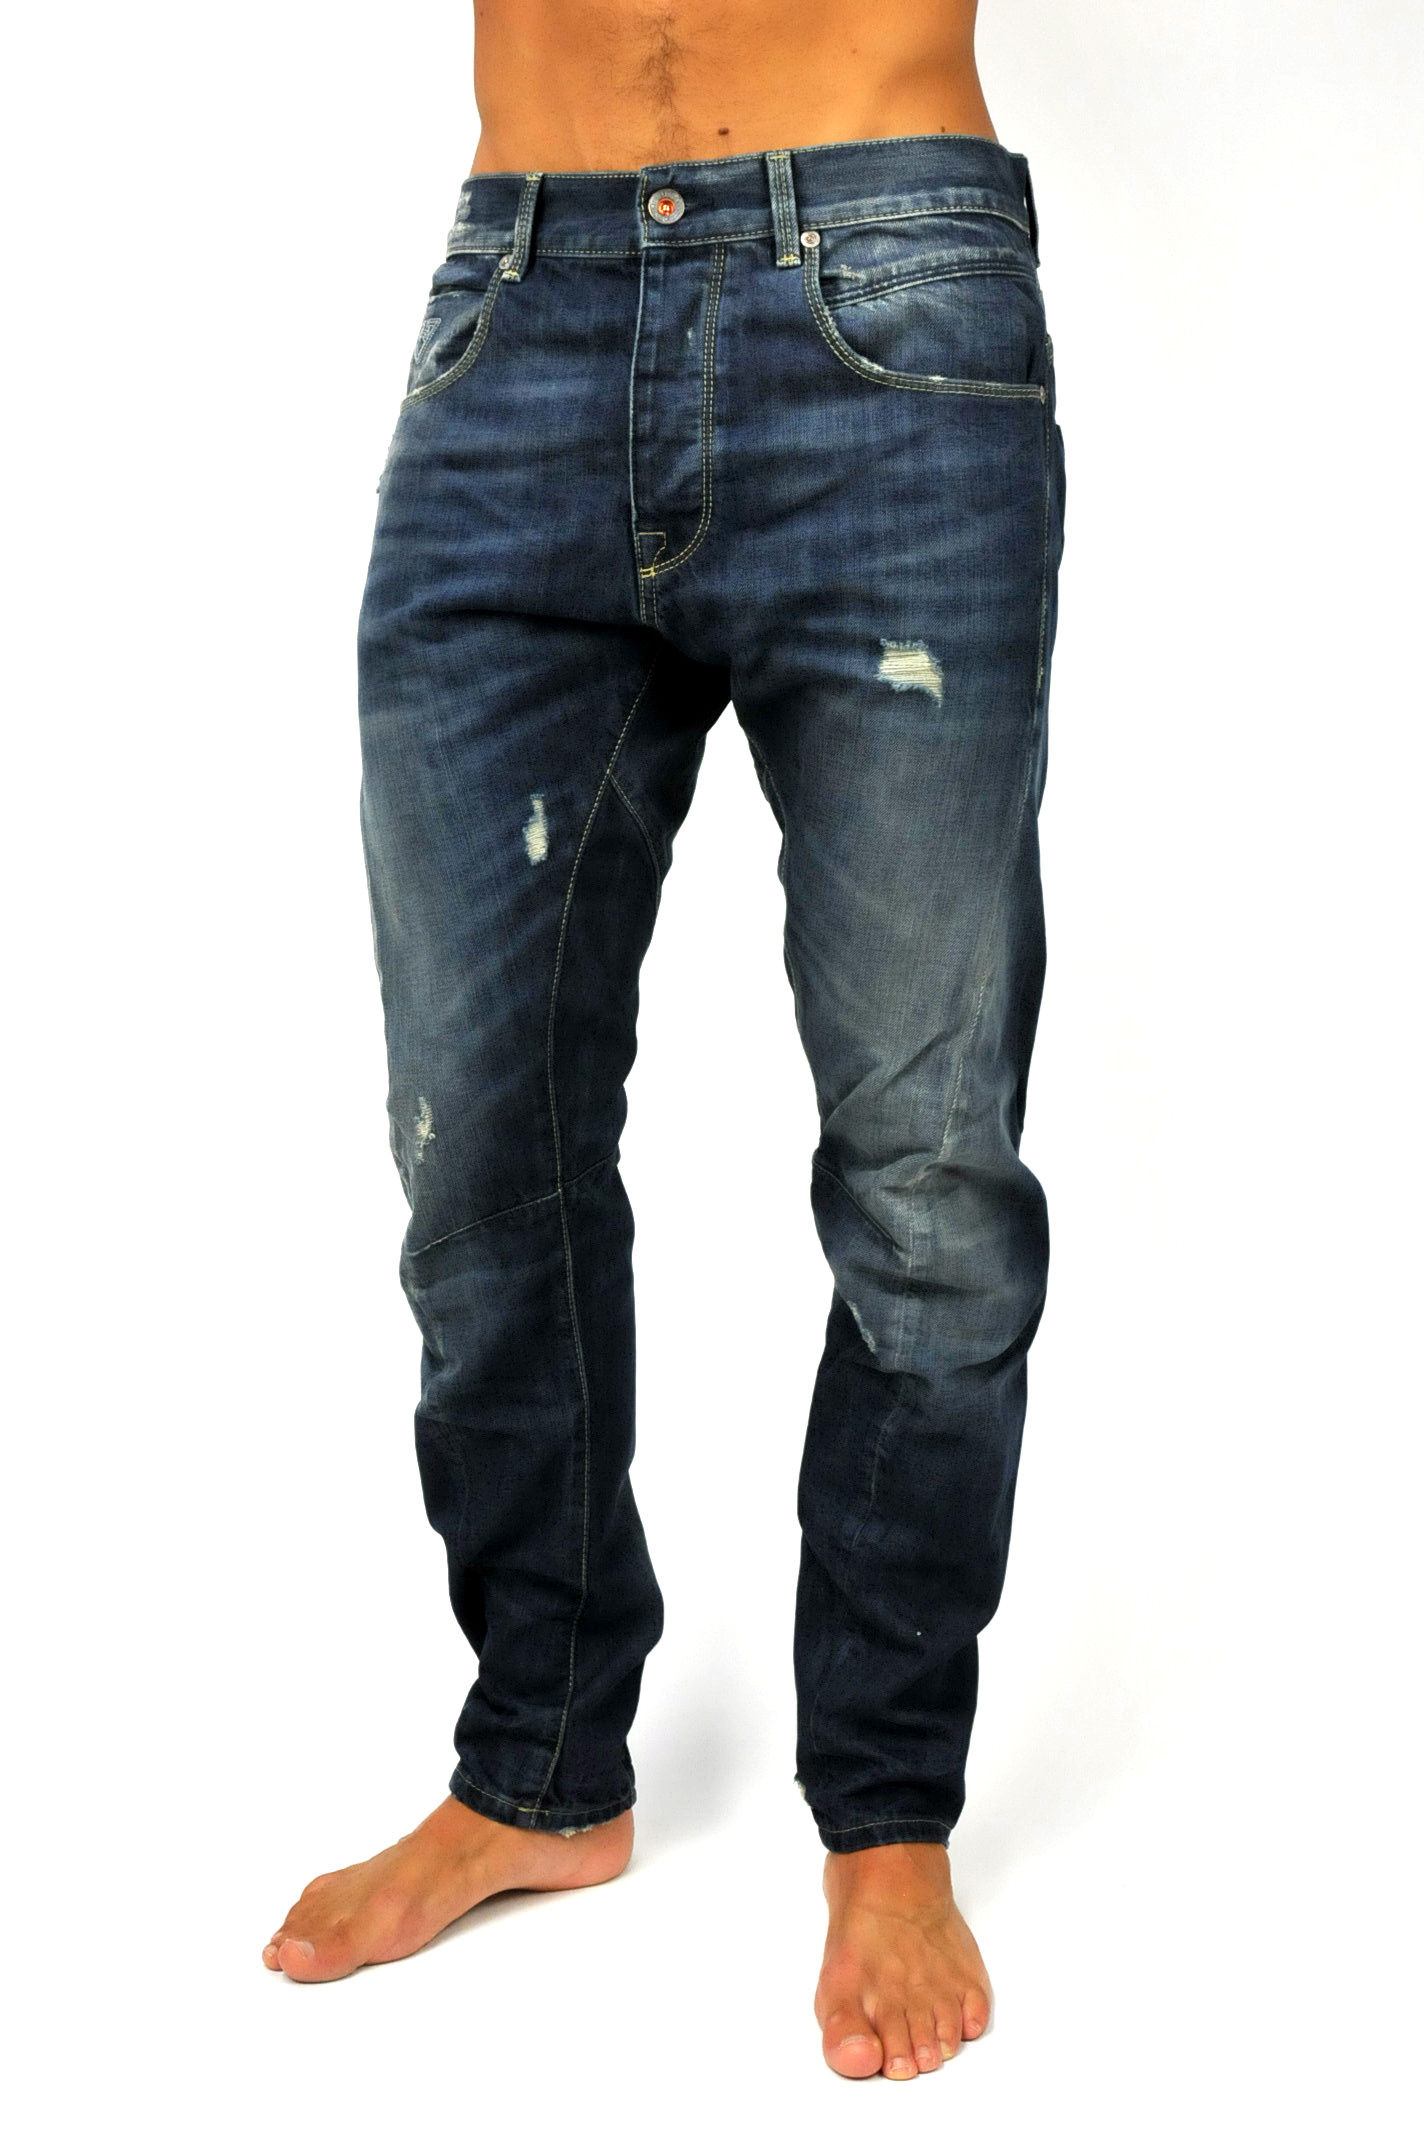 f4da7bc6cb62 Jeans scuro carrot fit di Fifty Four - Jeans Uomo